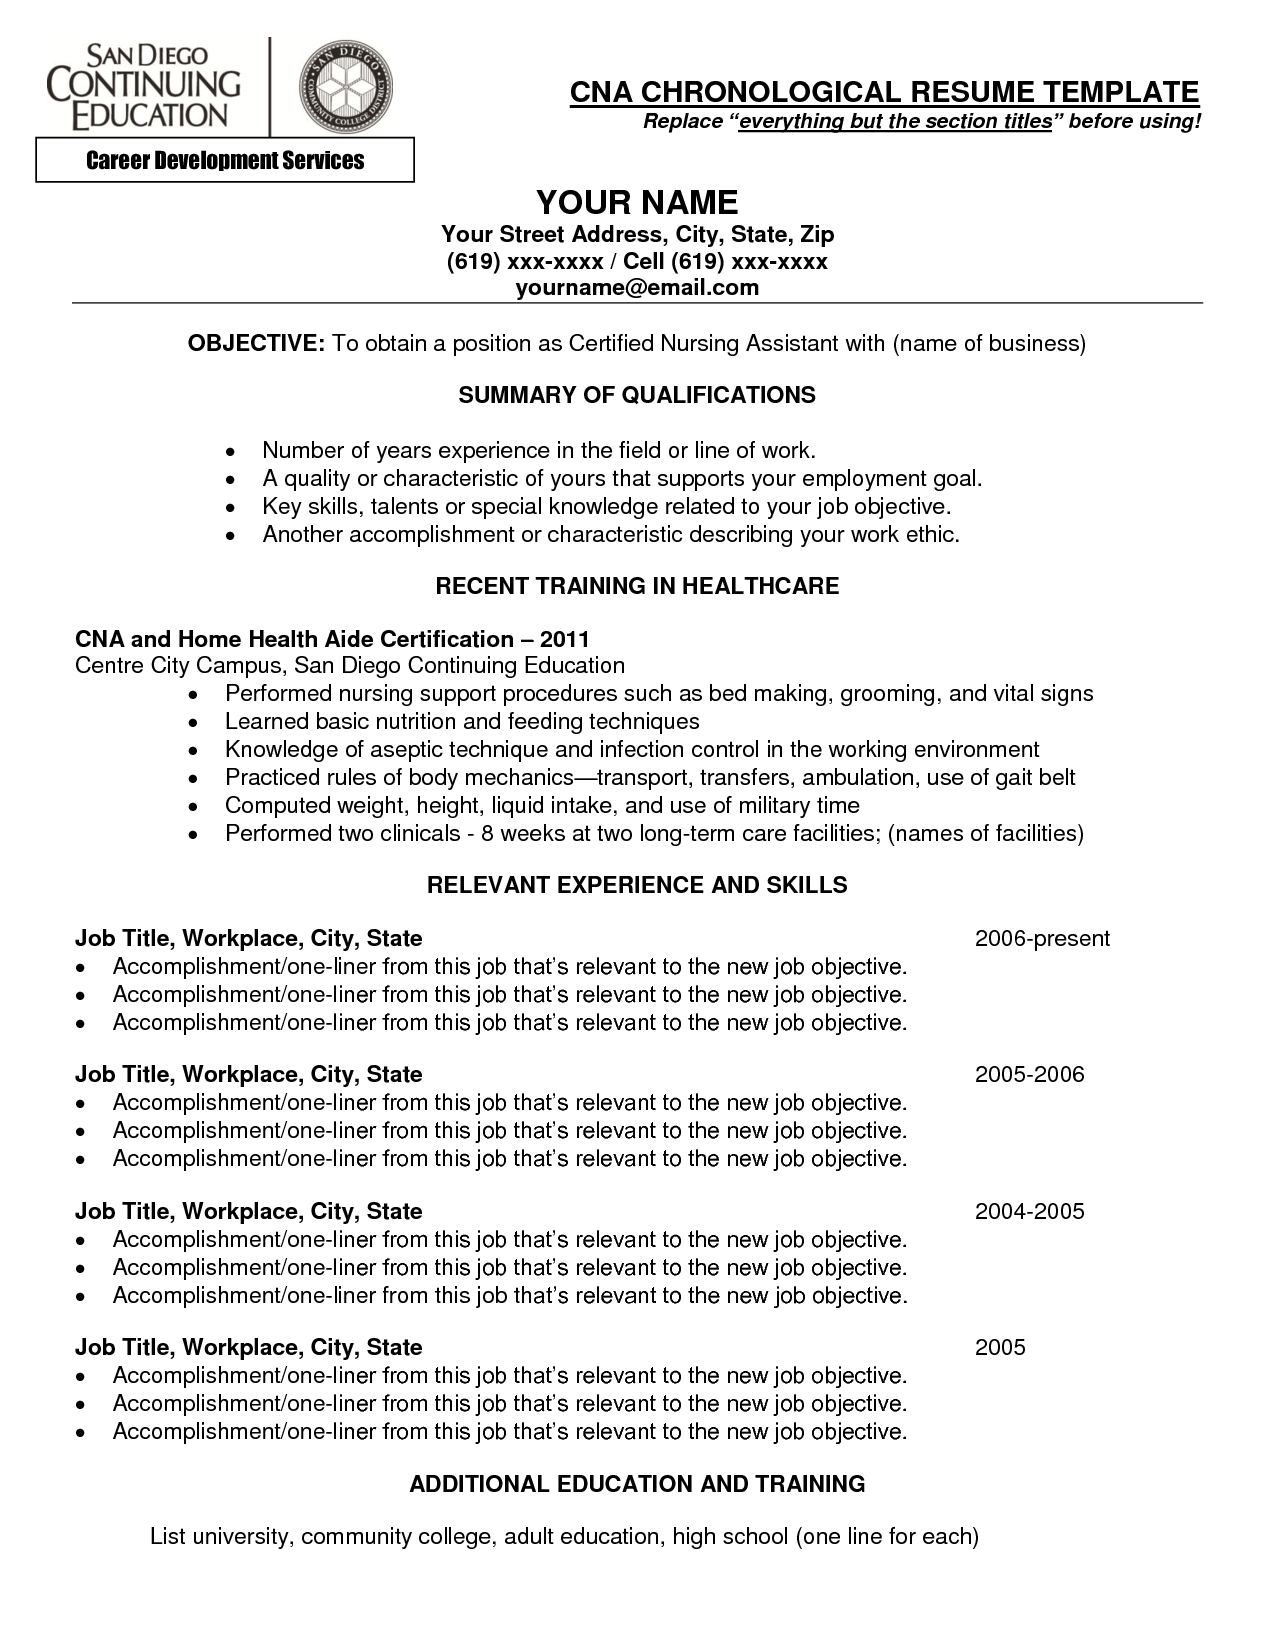 resume example google docs resume templates 2016 resume templates professional nursing